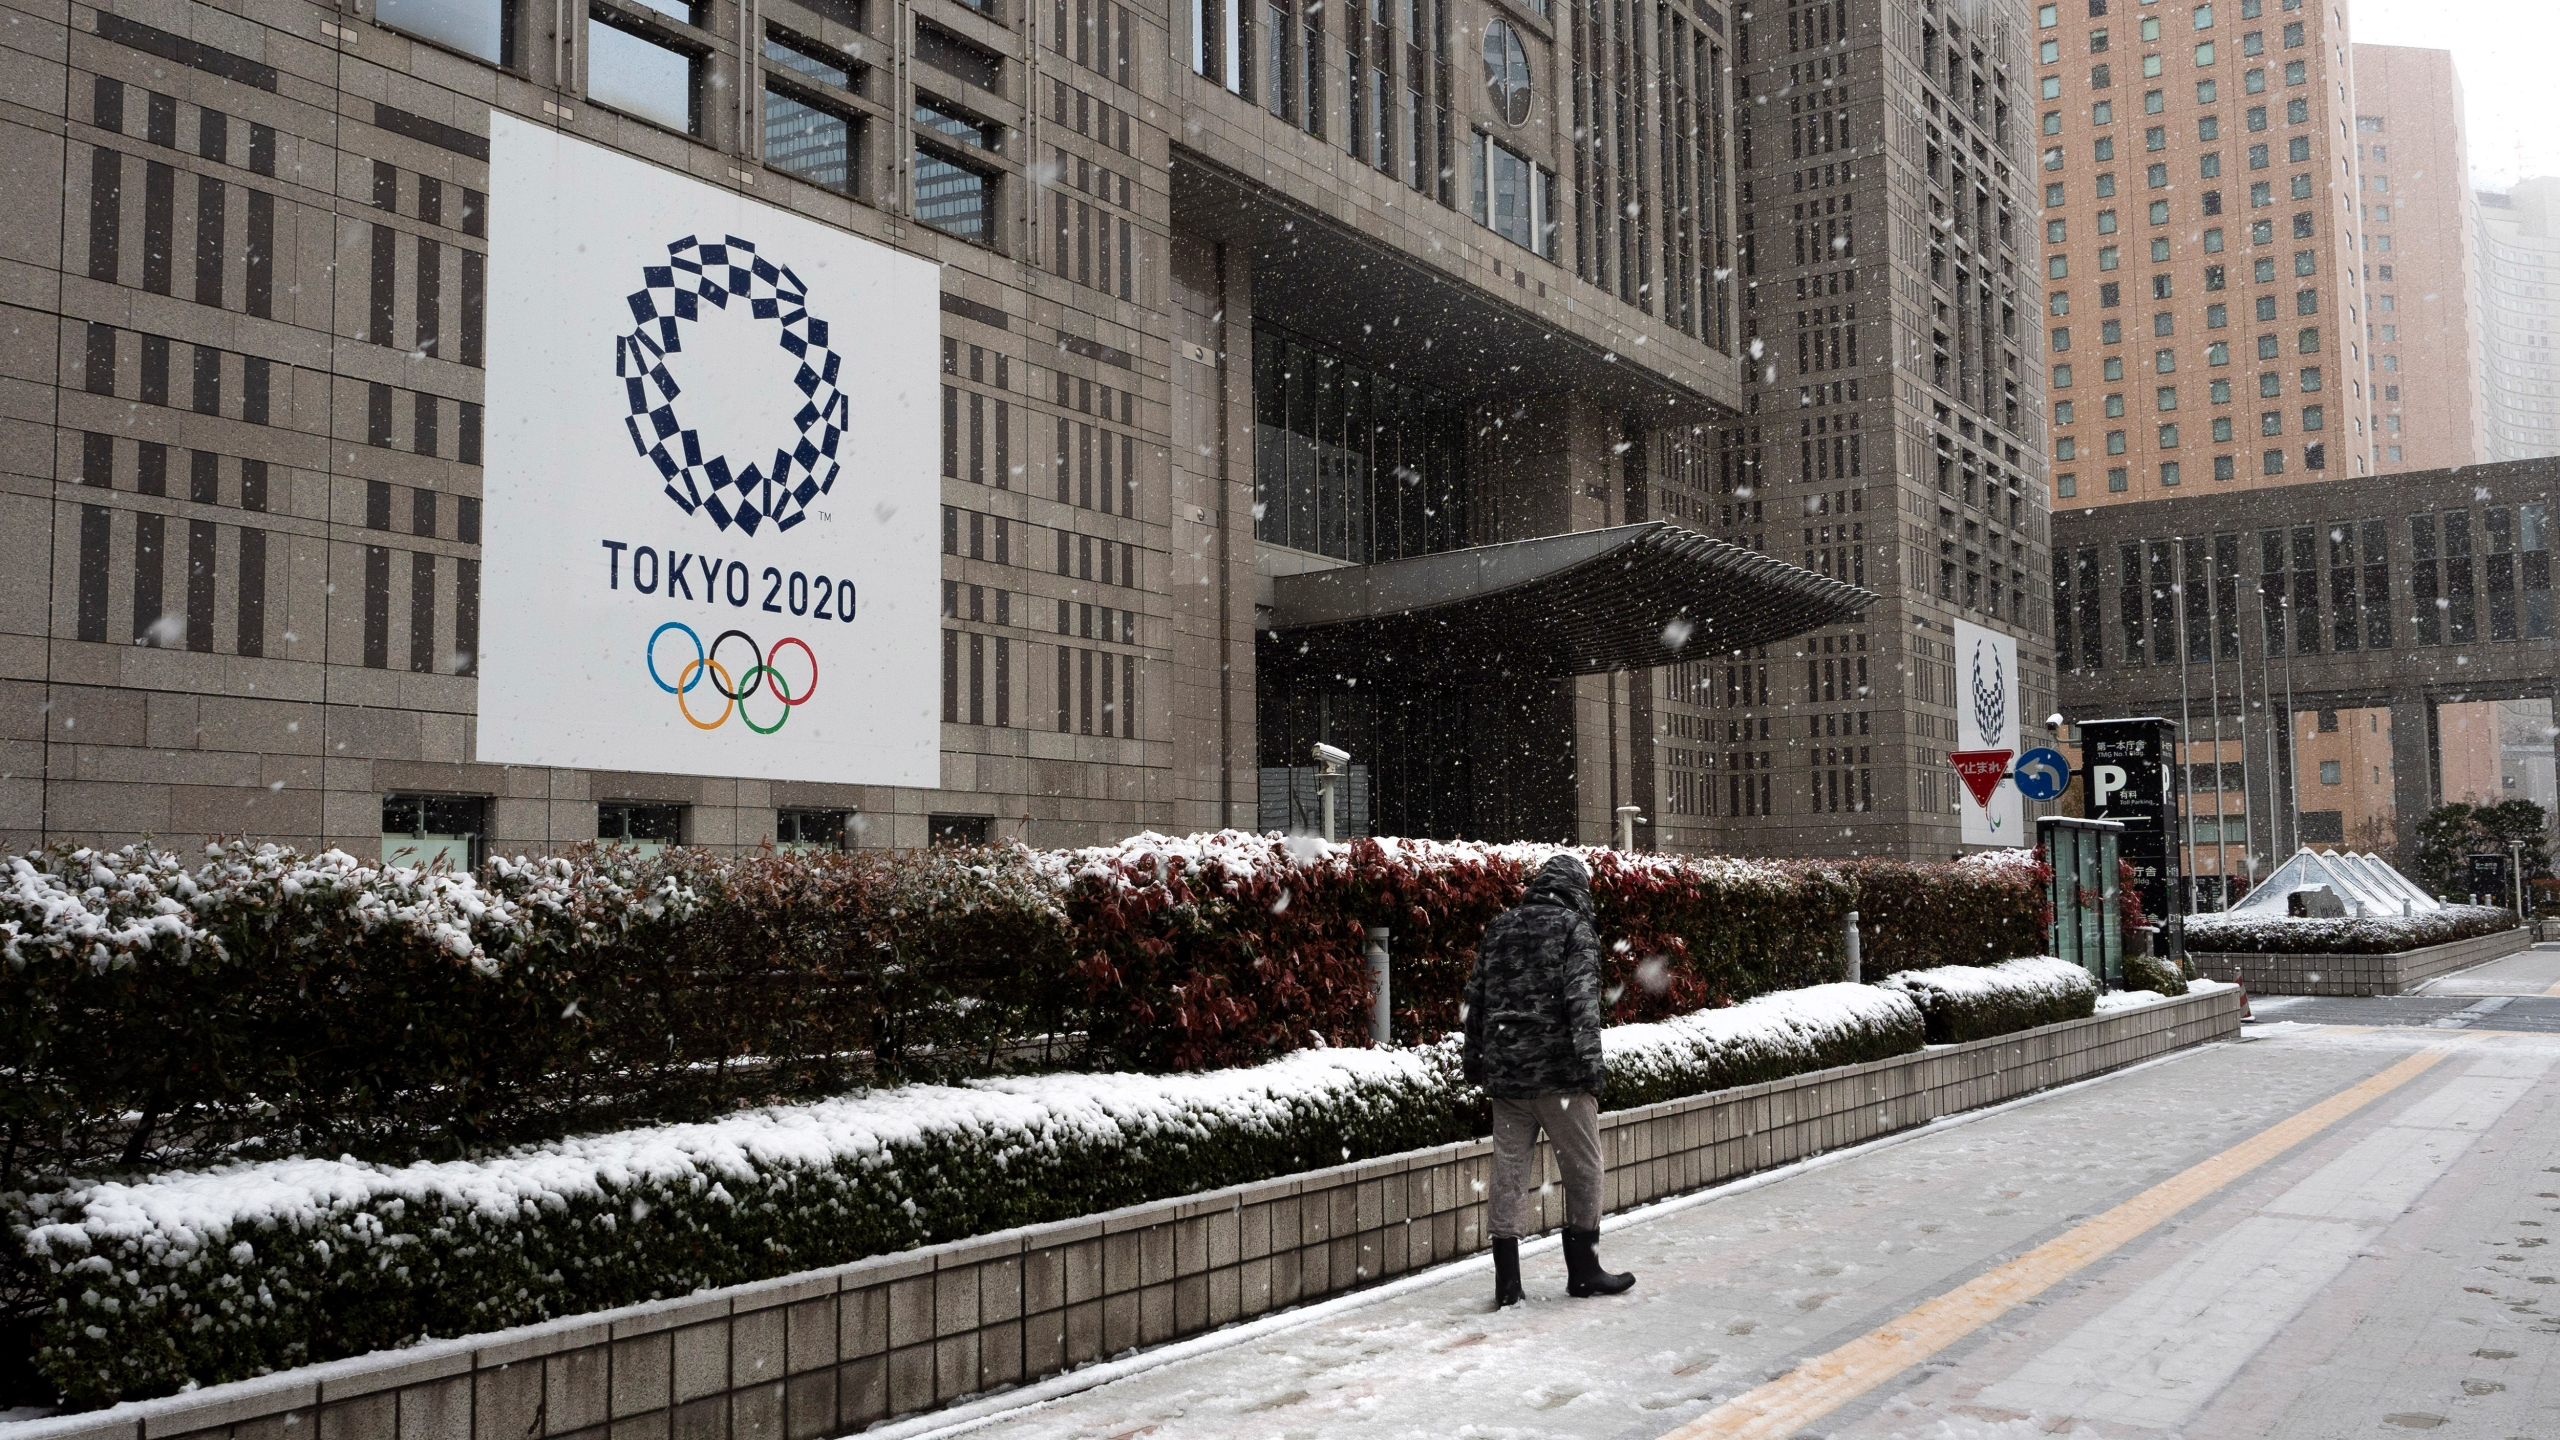 A man walks along a snow-covered sidewalk past a banner promoting the Tokyo 2020 Olympics Sunday, March 29, 2020, in Tokyo. (AP Photo/Jae C. Hong)